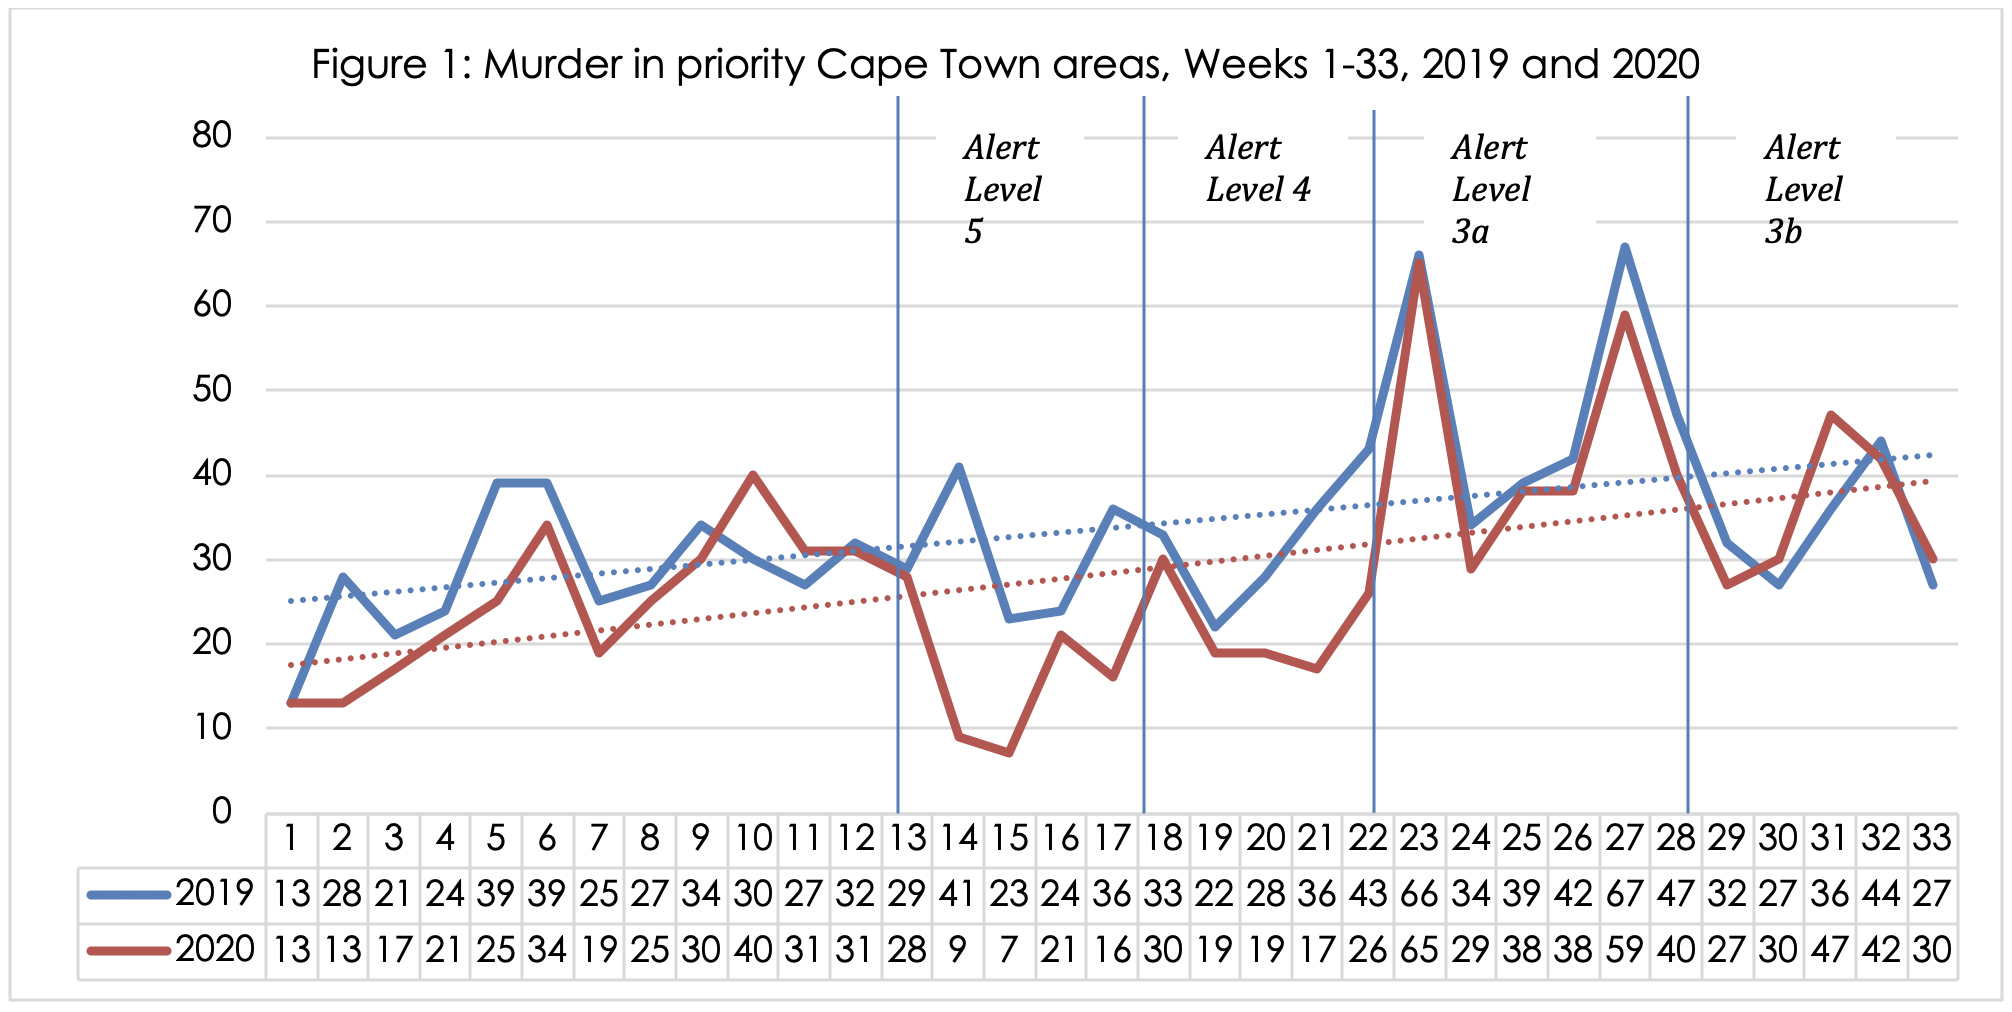 Figure 1: Murder in priority Cape Town areas, Weeks 1-33, 2019 and 2020